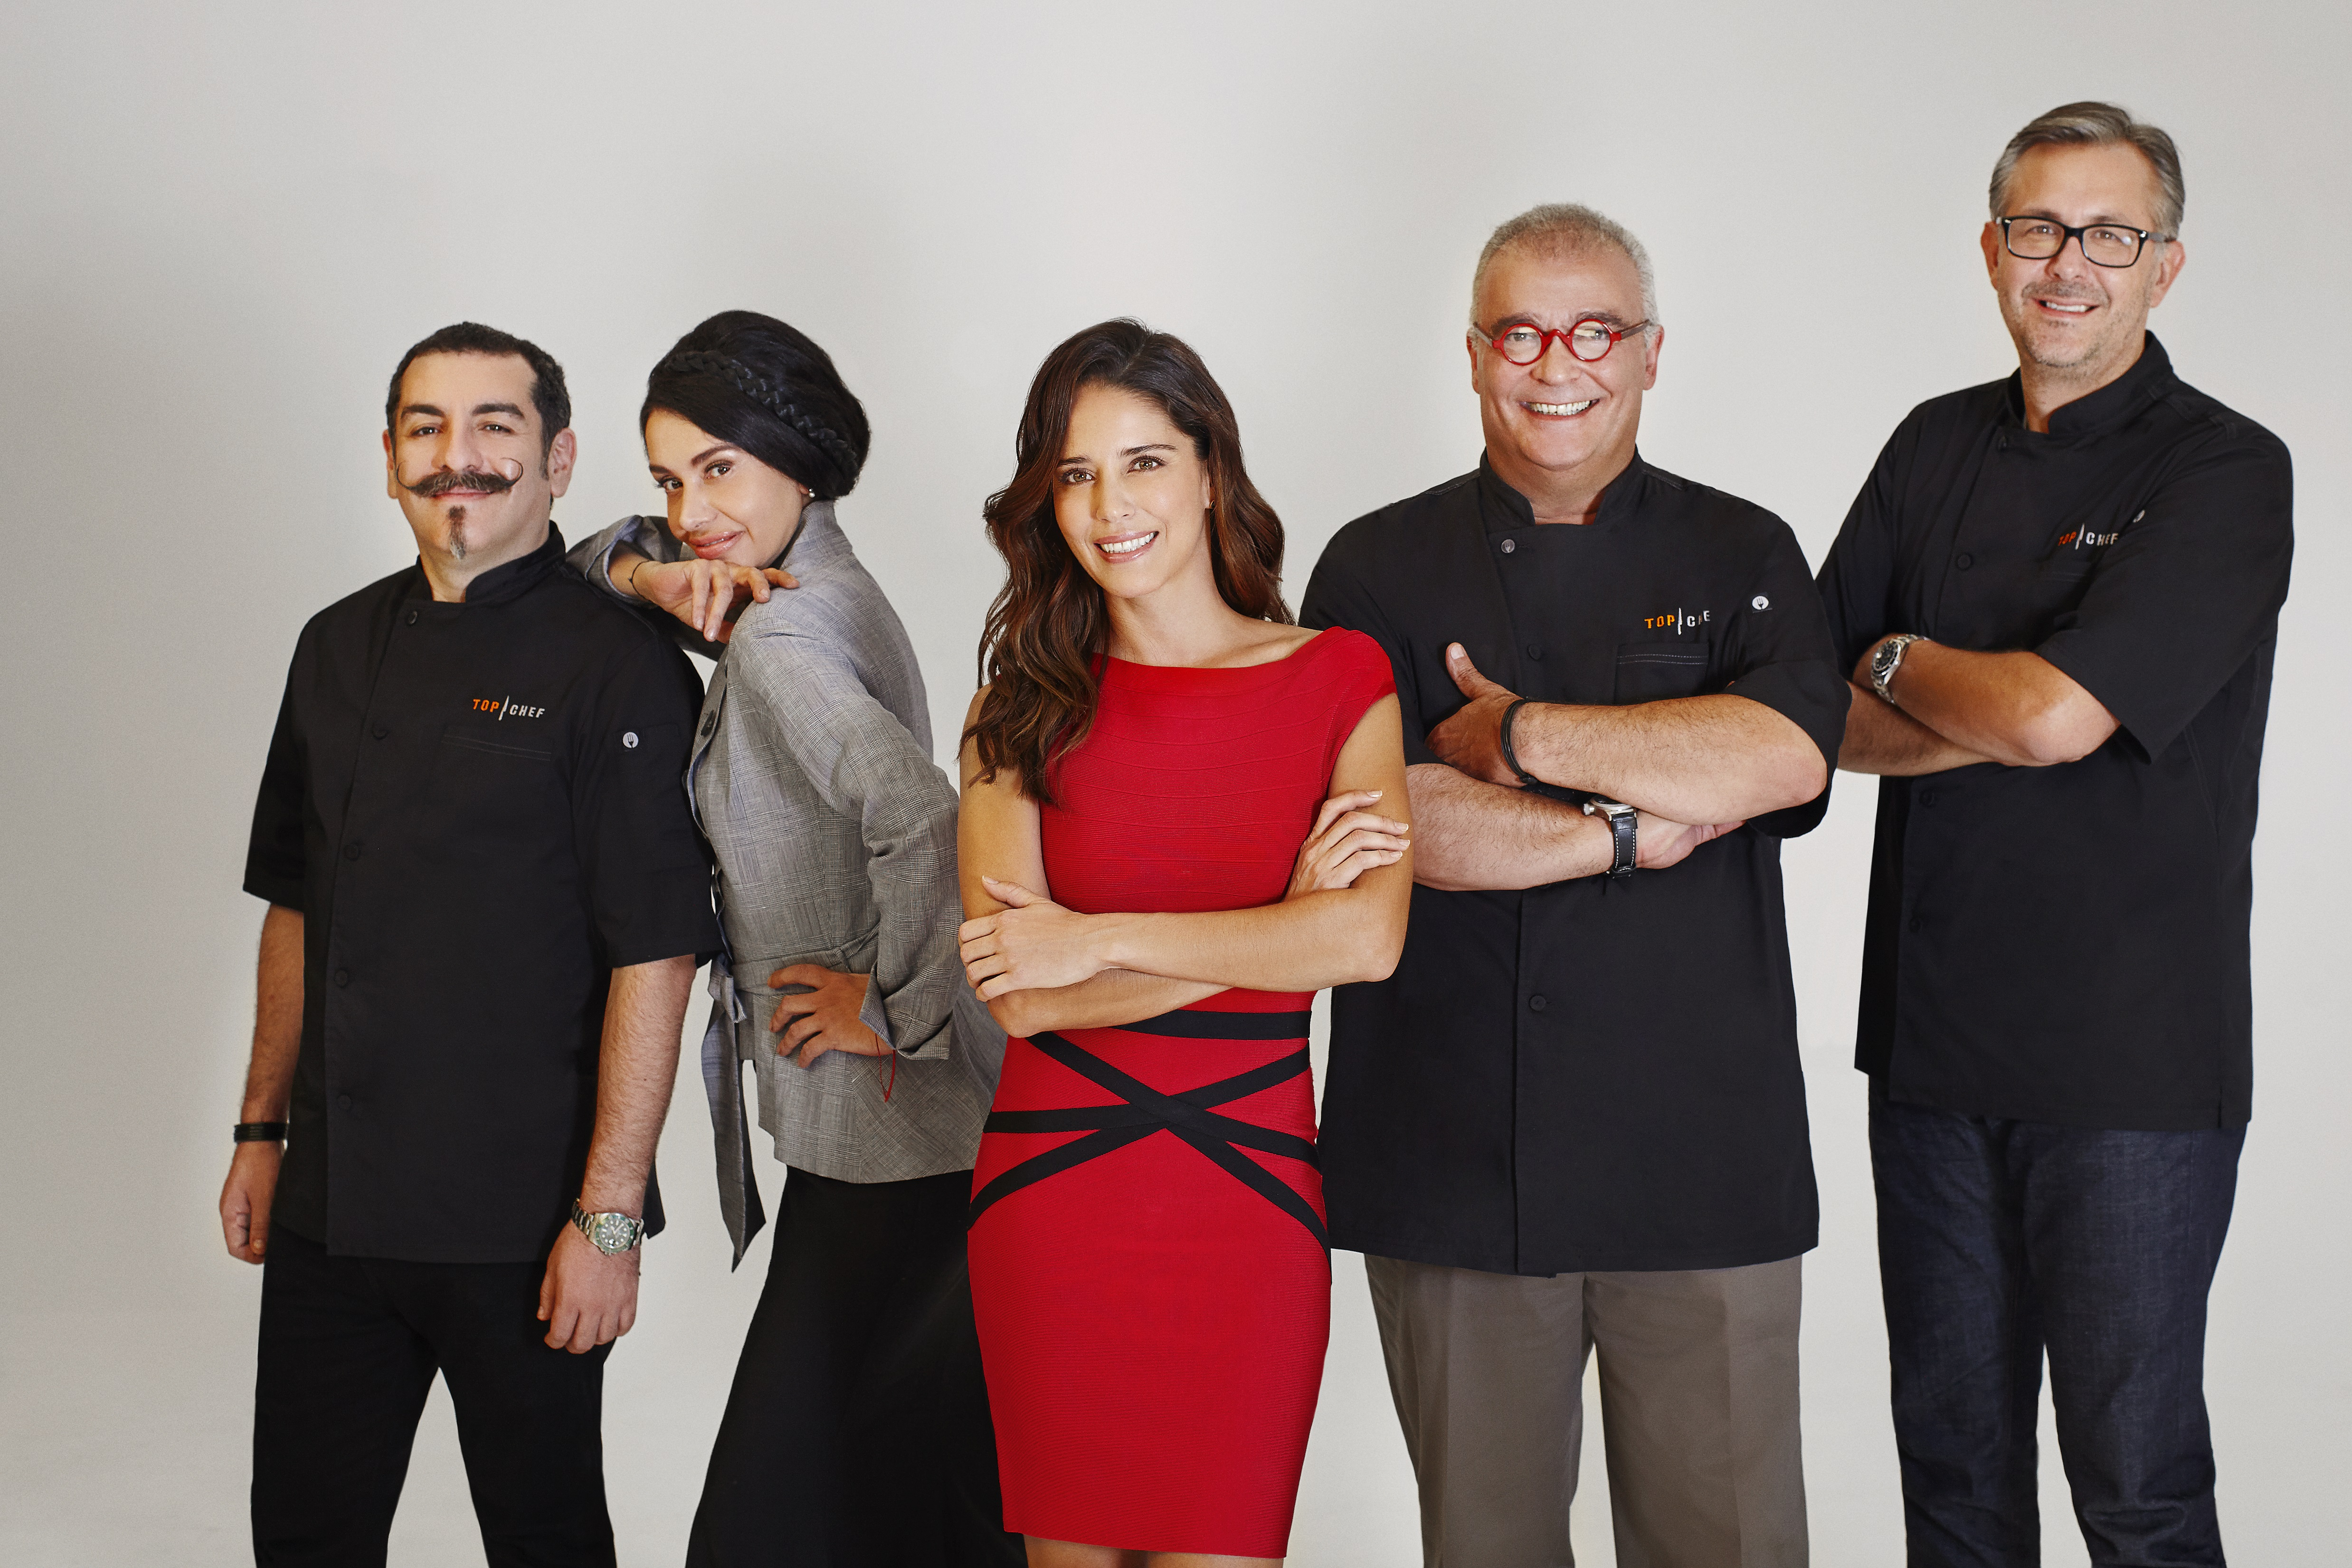 top chef méxico looks to wow americans with its chefs